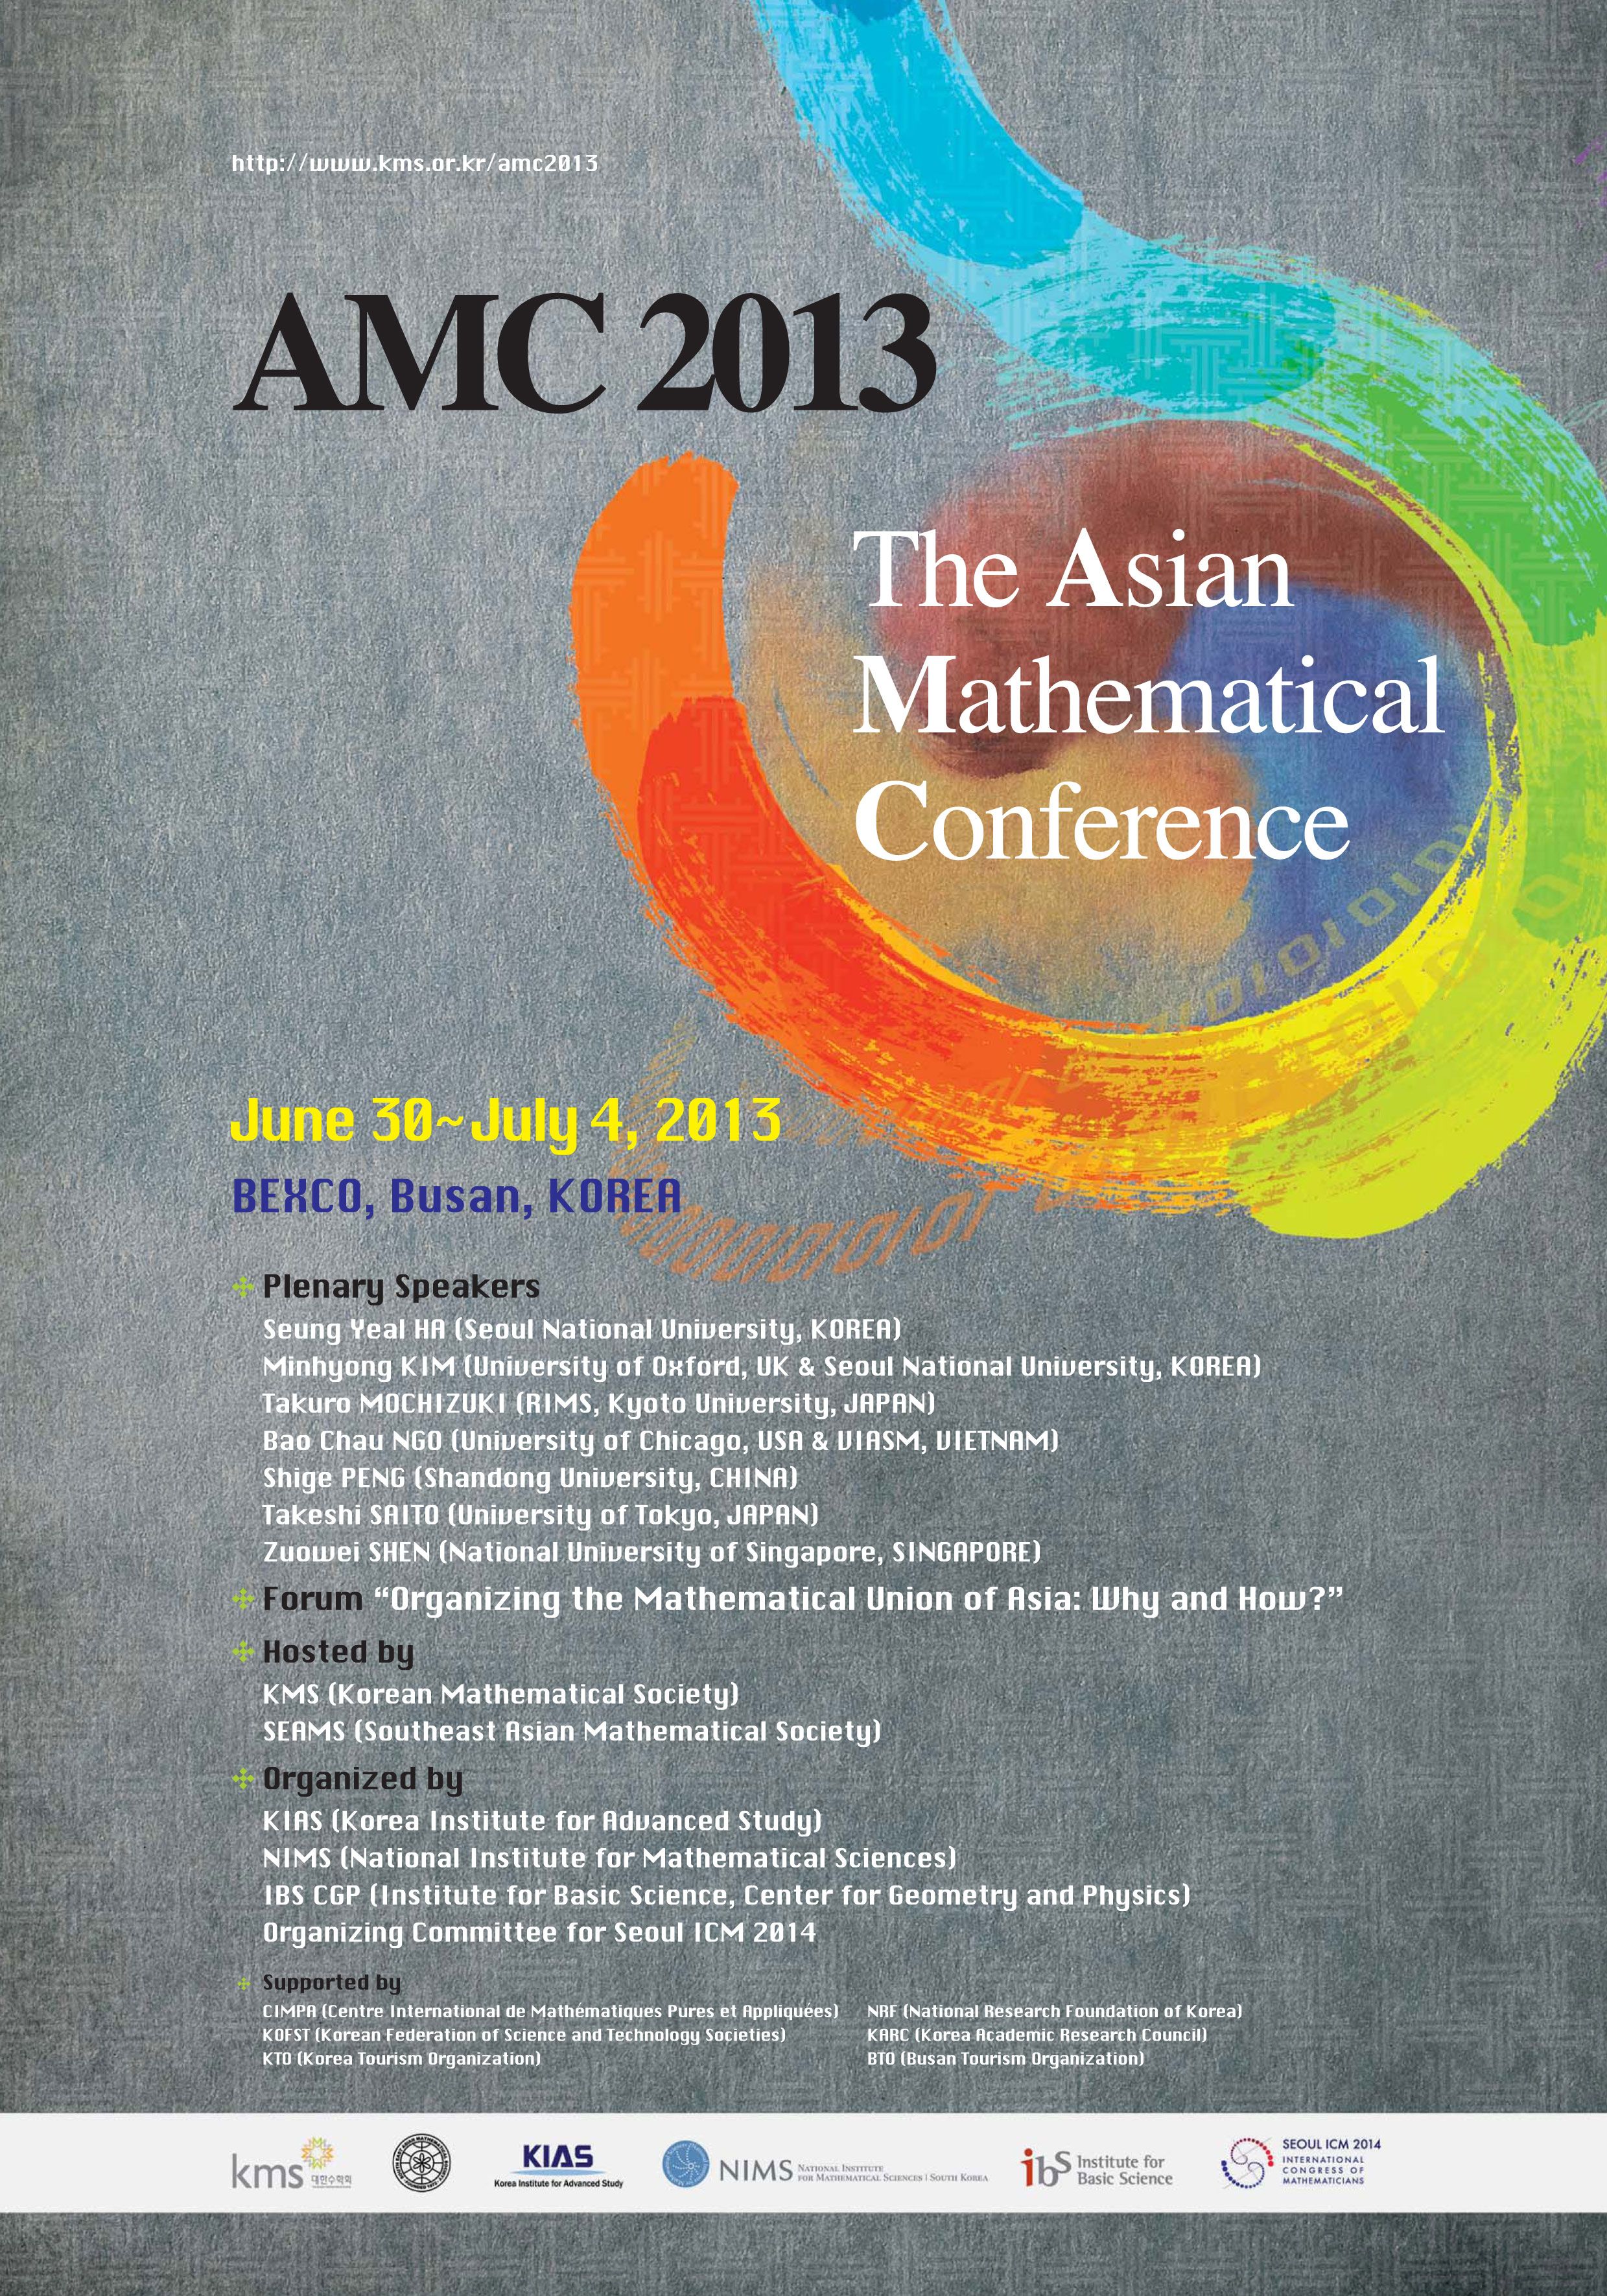 The Asian Mathematical Conference 2013